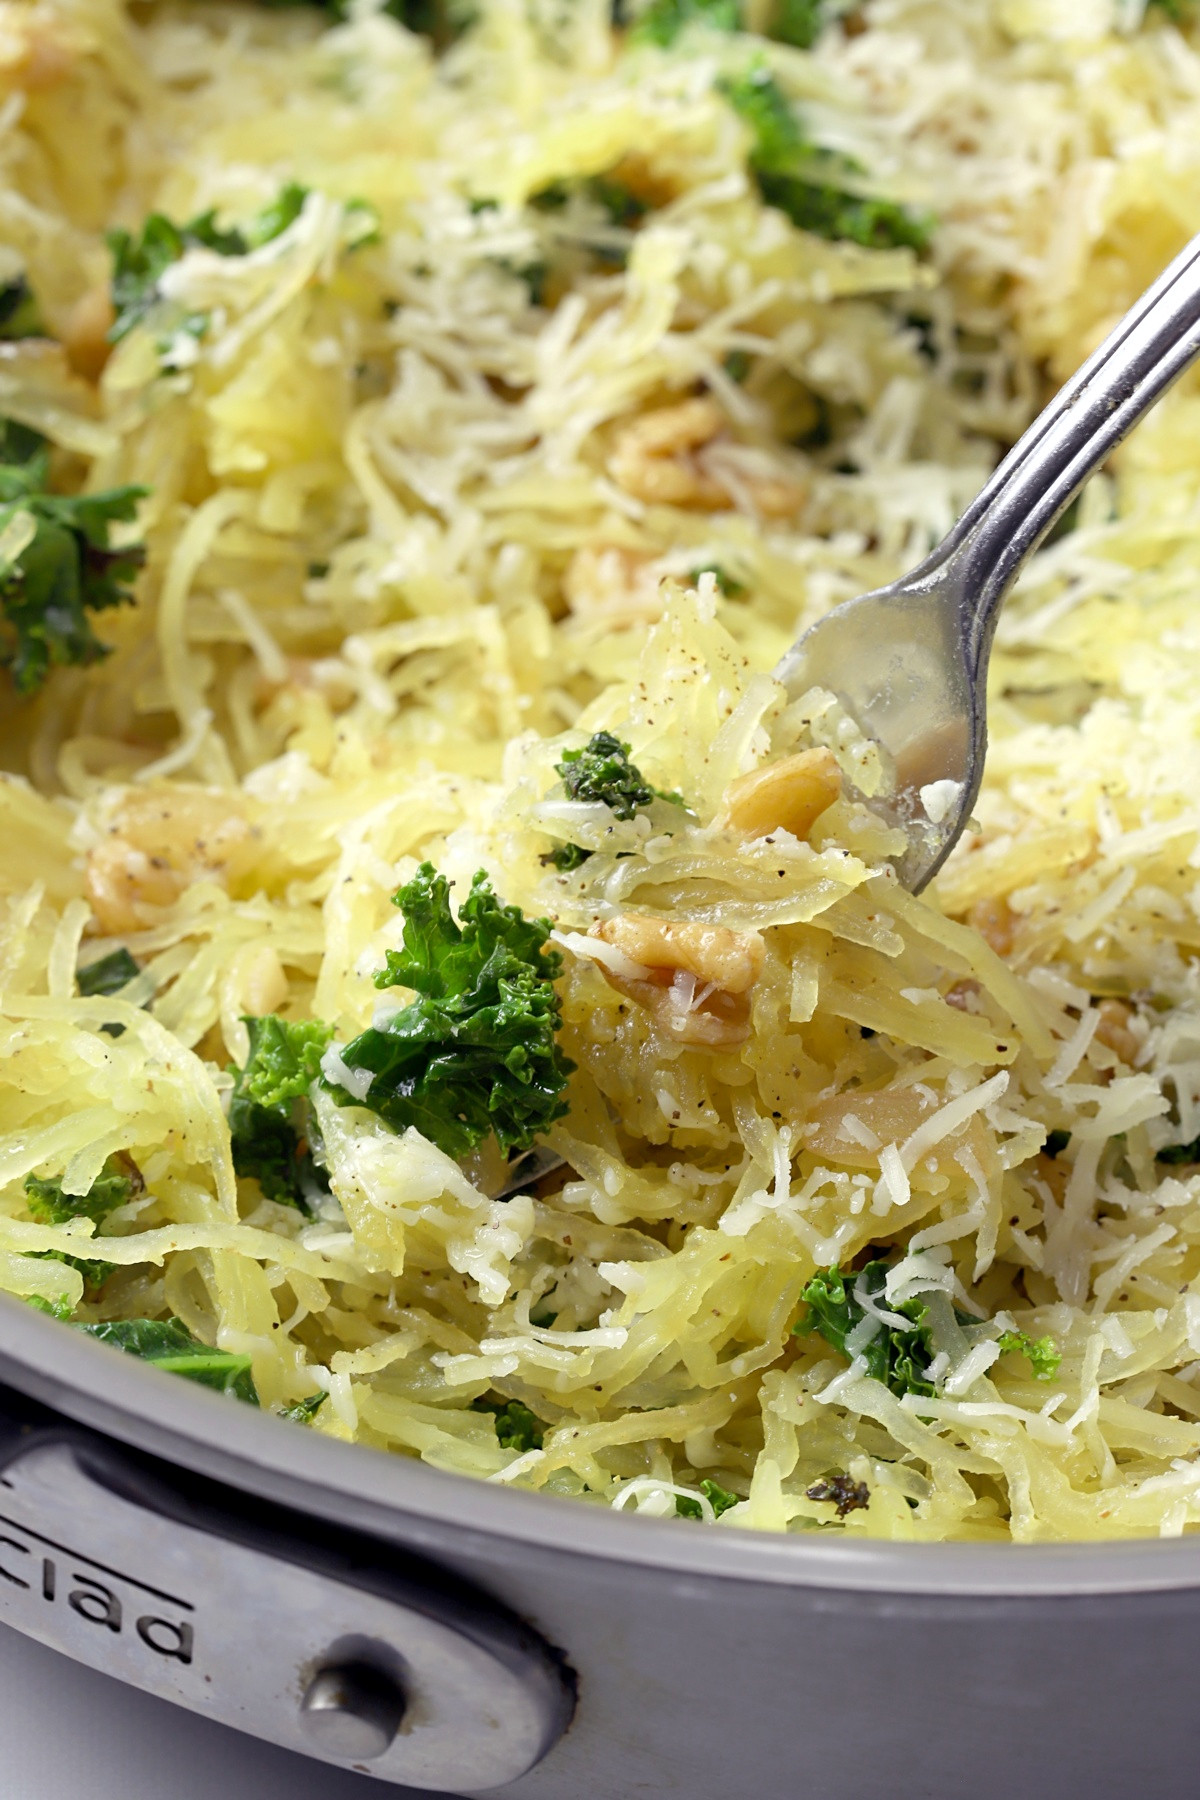 A fork picking up a bite of spaghetti squash and kale.